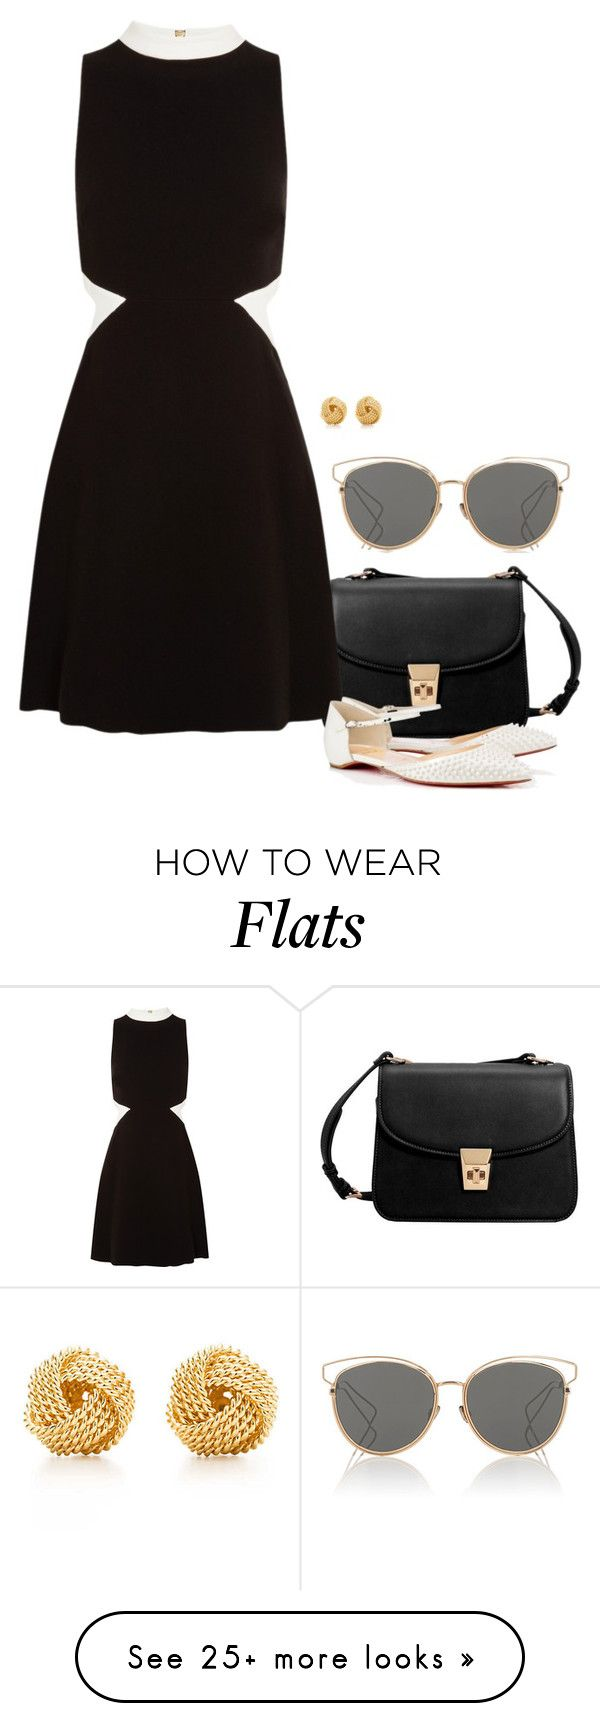 """Constance."" by foreverforbiddenromancefashion on Polyvore featuring MANGO, Rachel Zoe, Christian Louboutin, Christian Dior and Tiffany & Co."